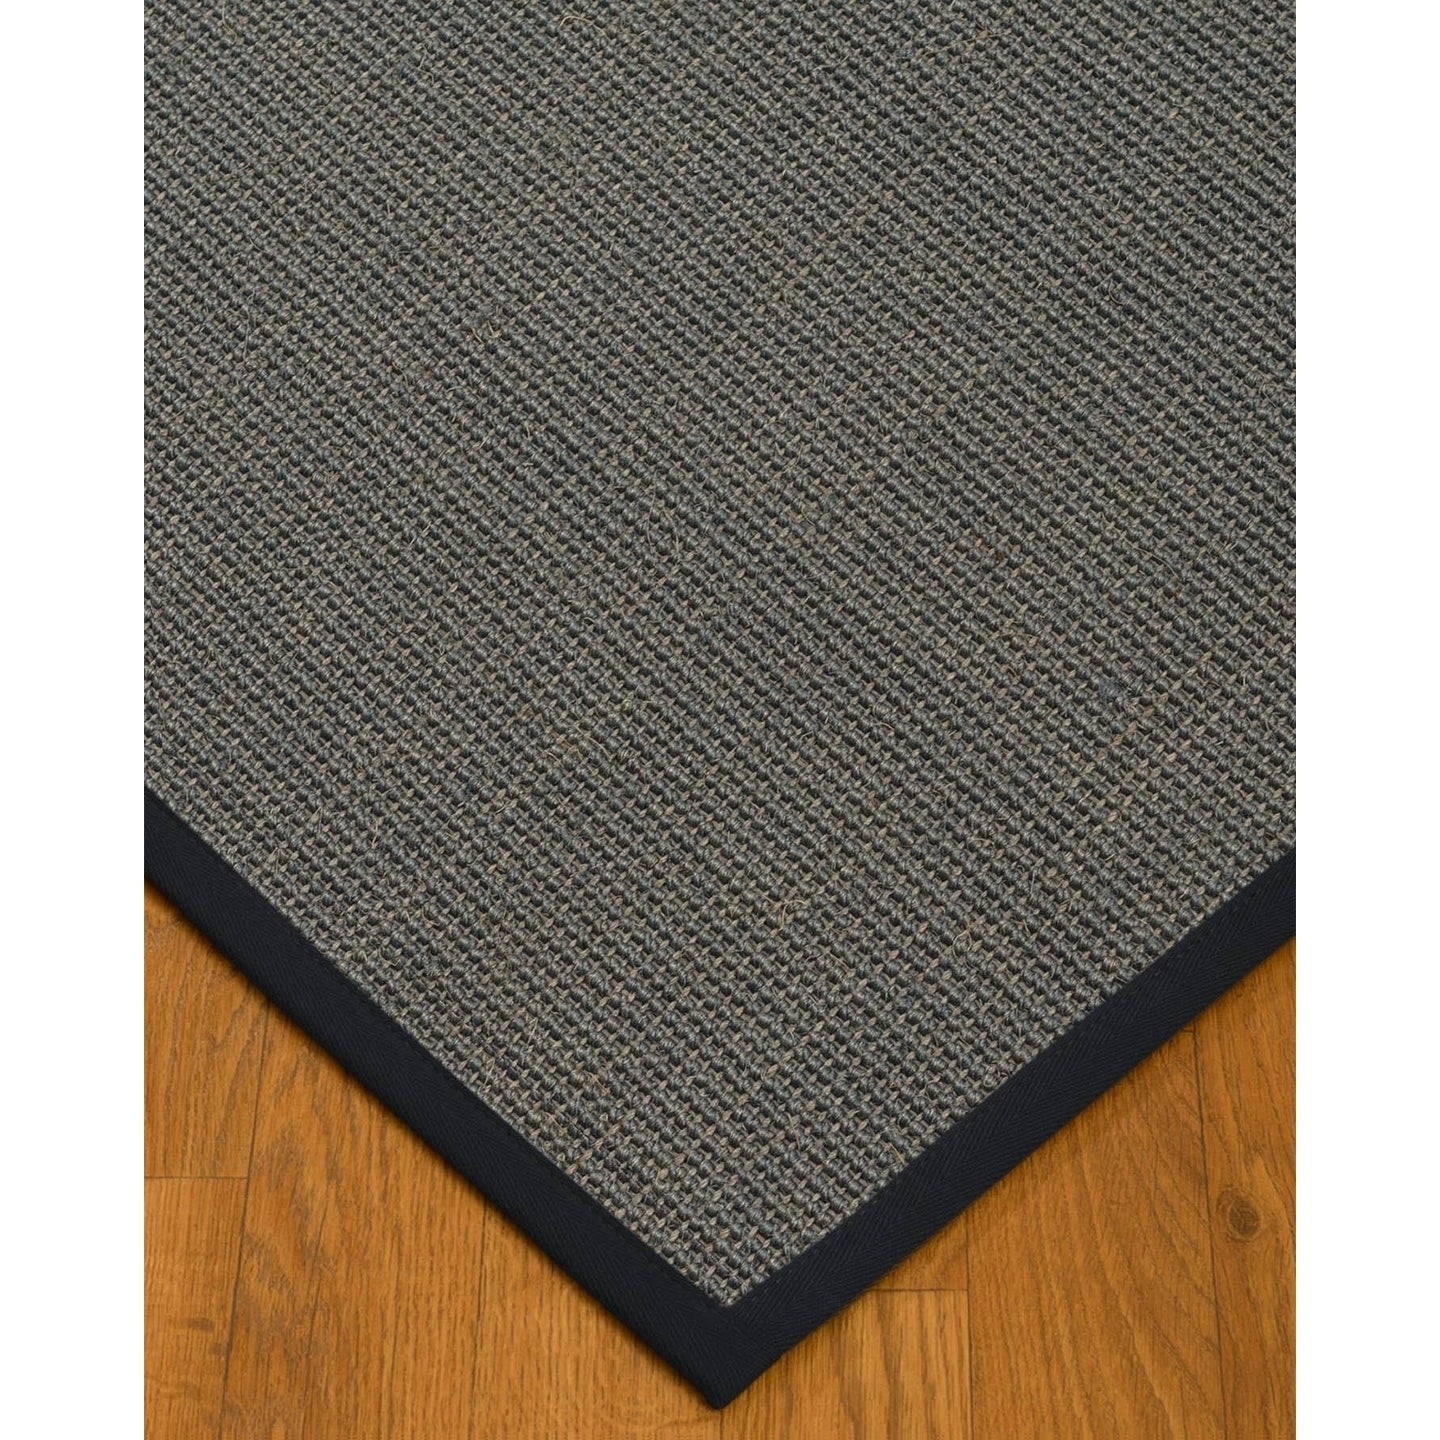 Naturalarearugs cortona carpet stair treads set of 13 9x29 free shipping today overstock 26405777